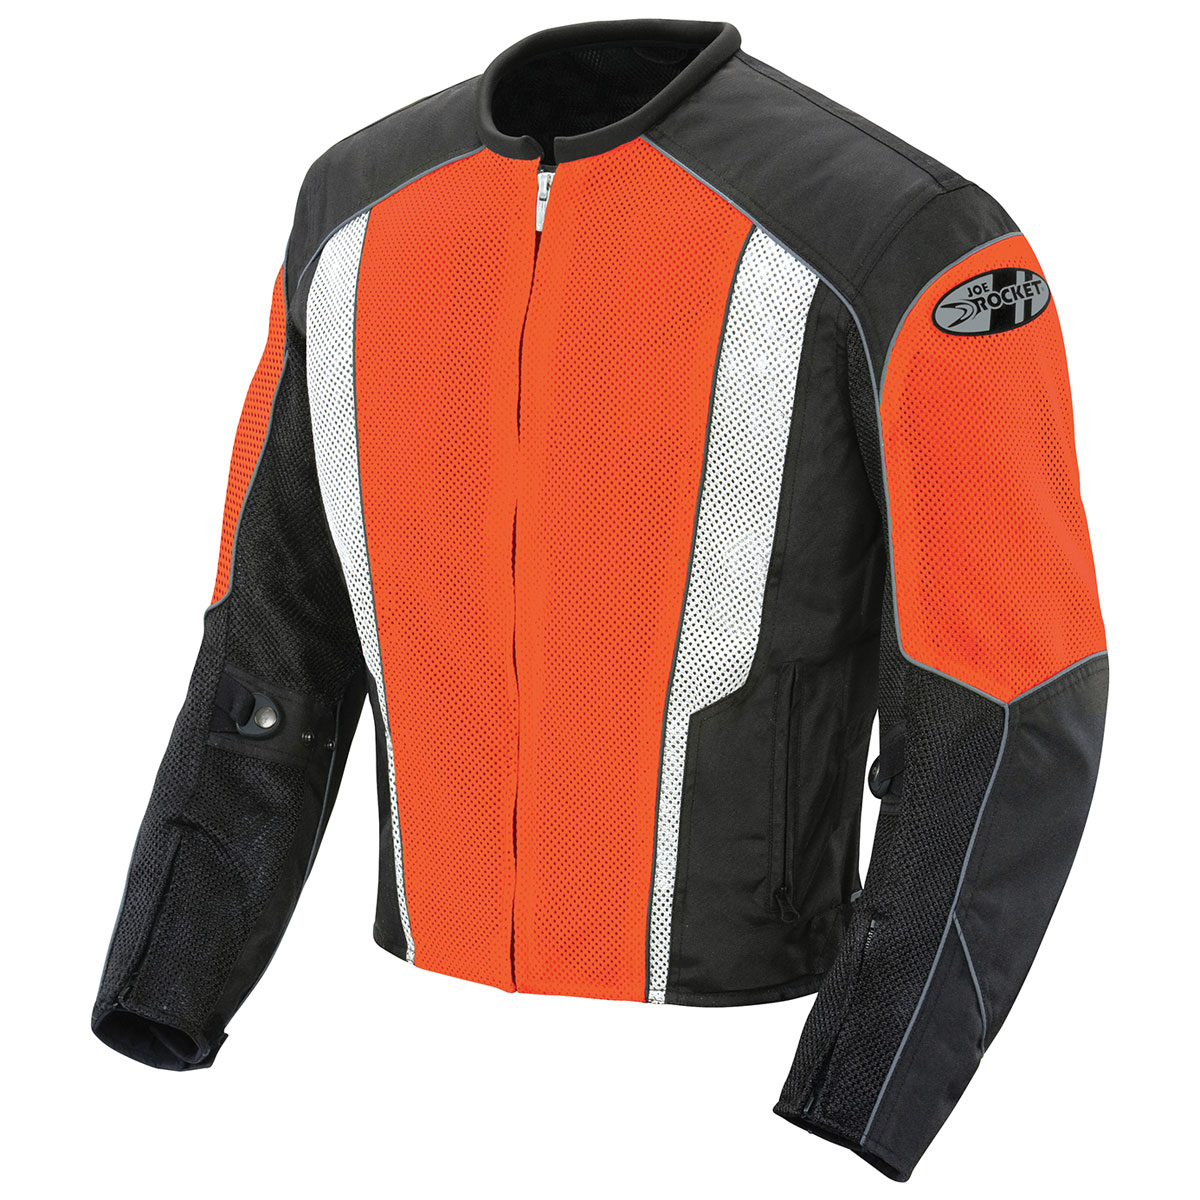 Joe Rocket Men's Phoenix 5.0 Orange/Black Mesh Jacket